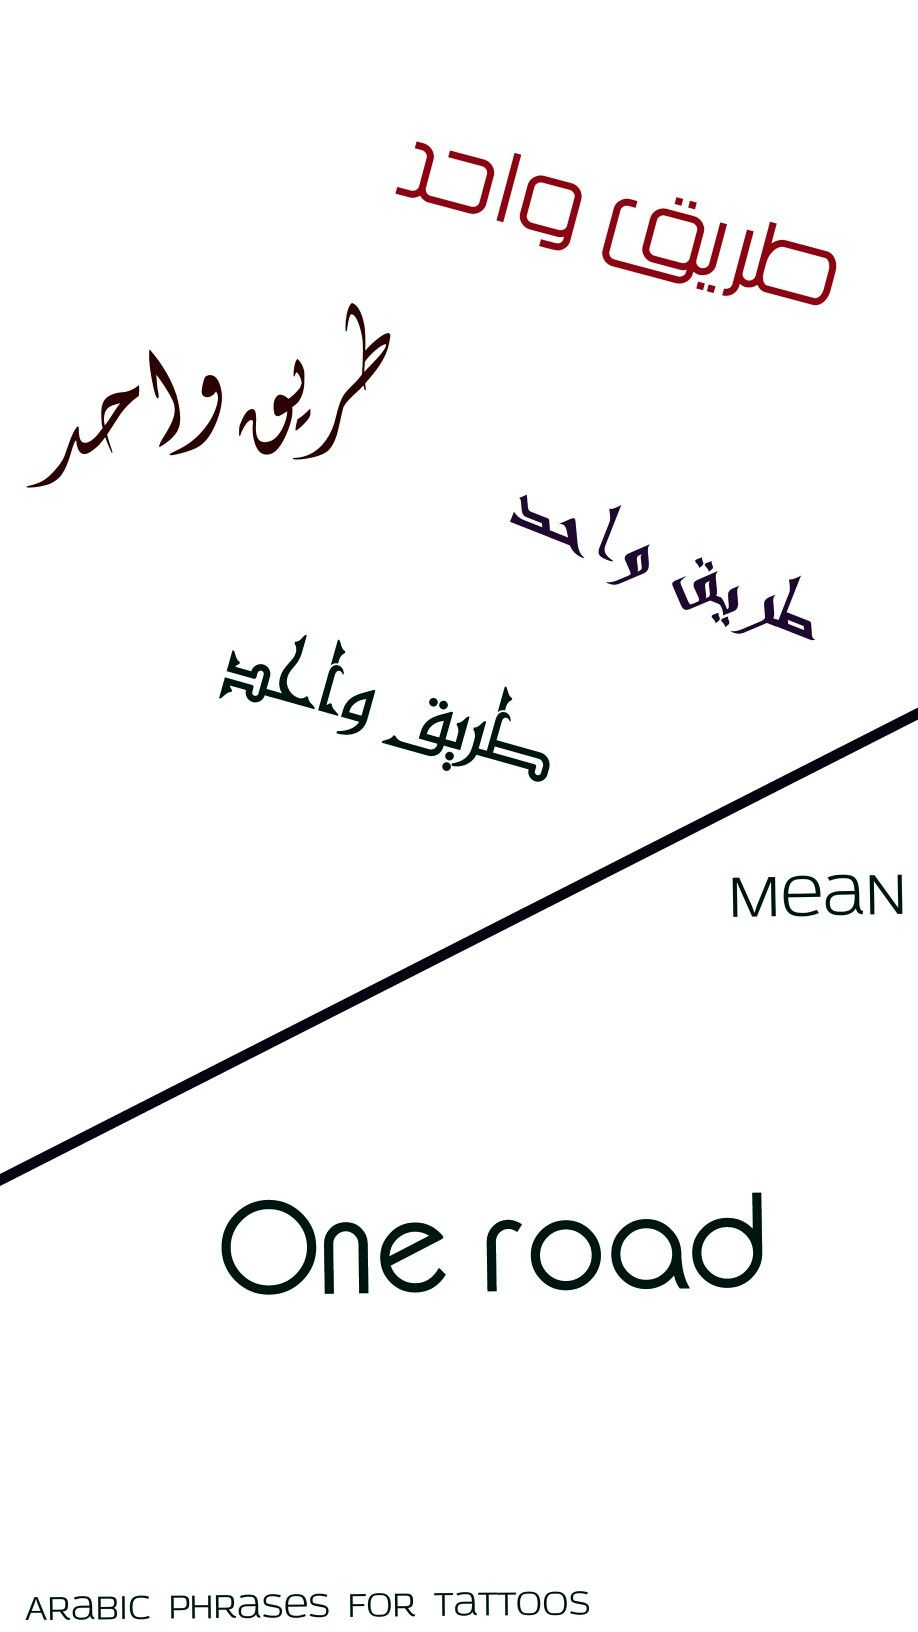 Arabic tattoo meaning one road tattoo arabictattoo tattoo arabic tattoo meaning one road tattoo arabictattoo buycottarizona Image collections